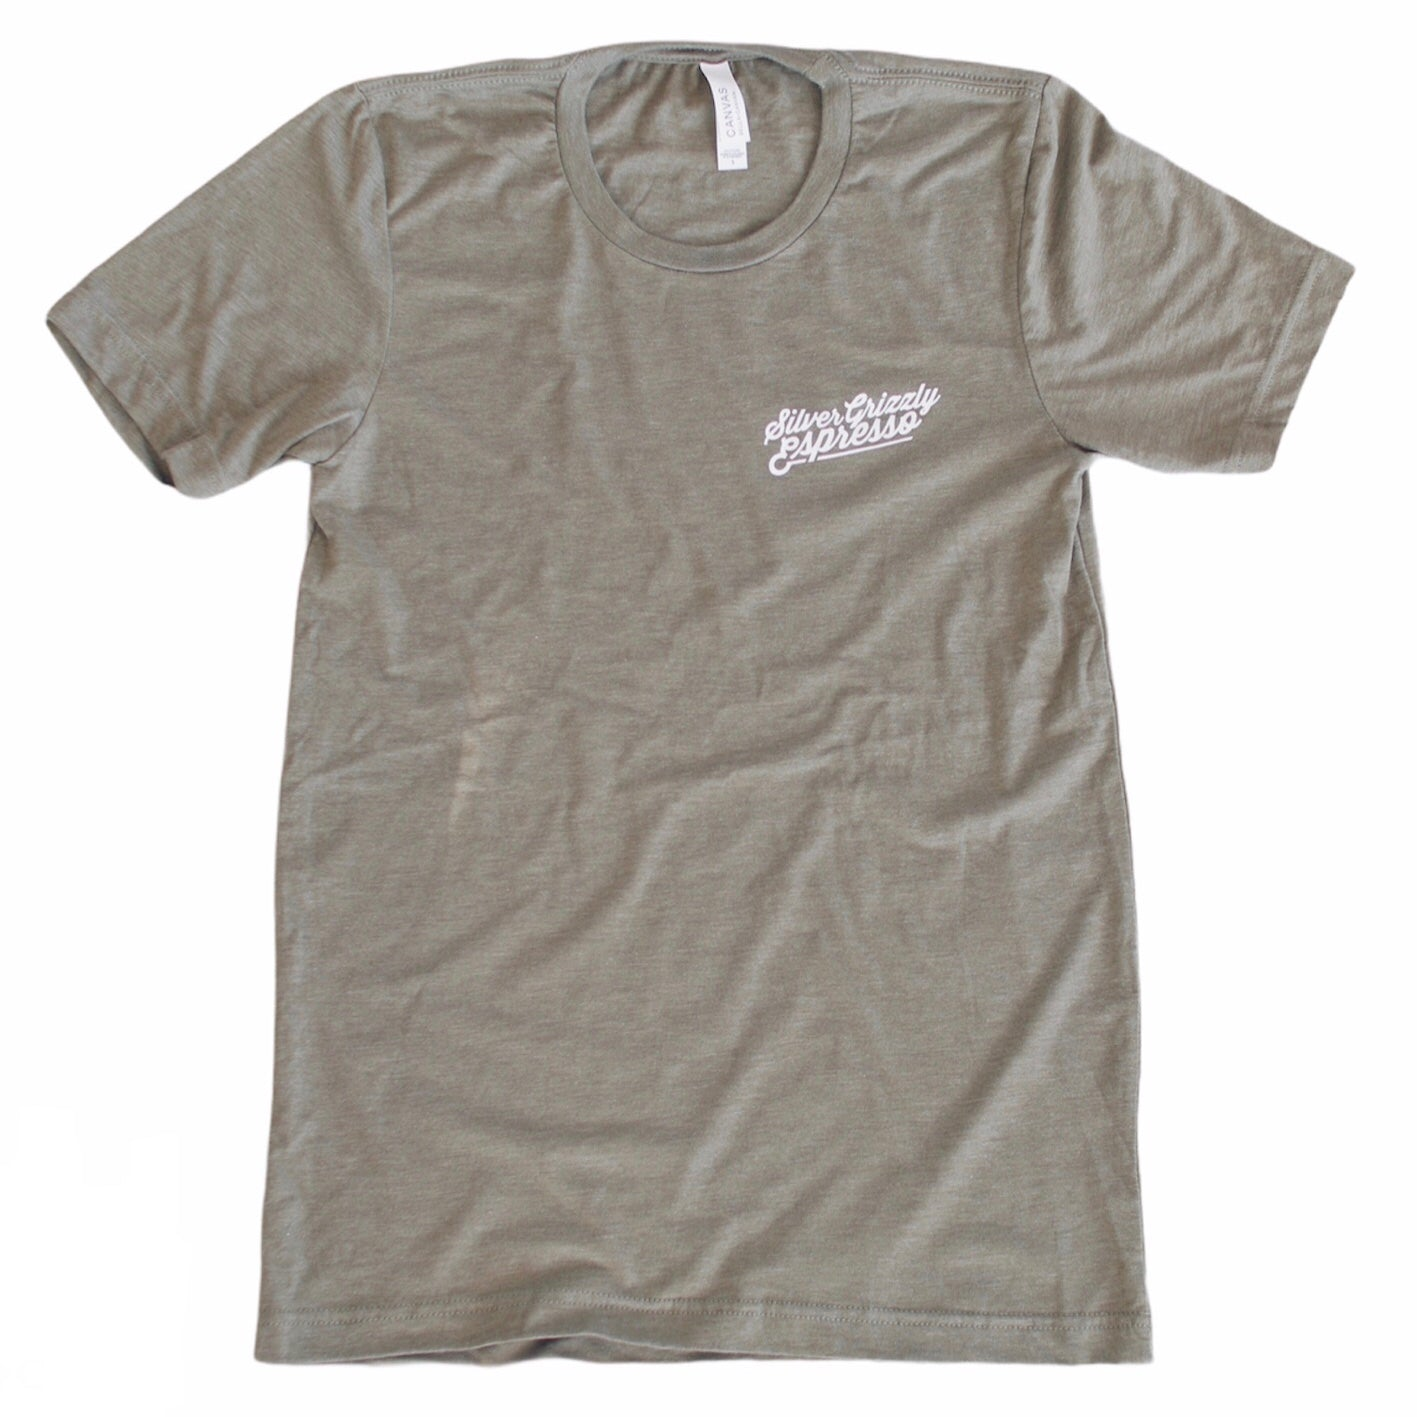 Minimal T-shirt in Olive